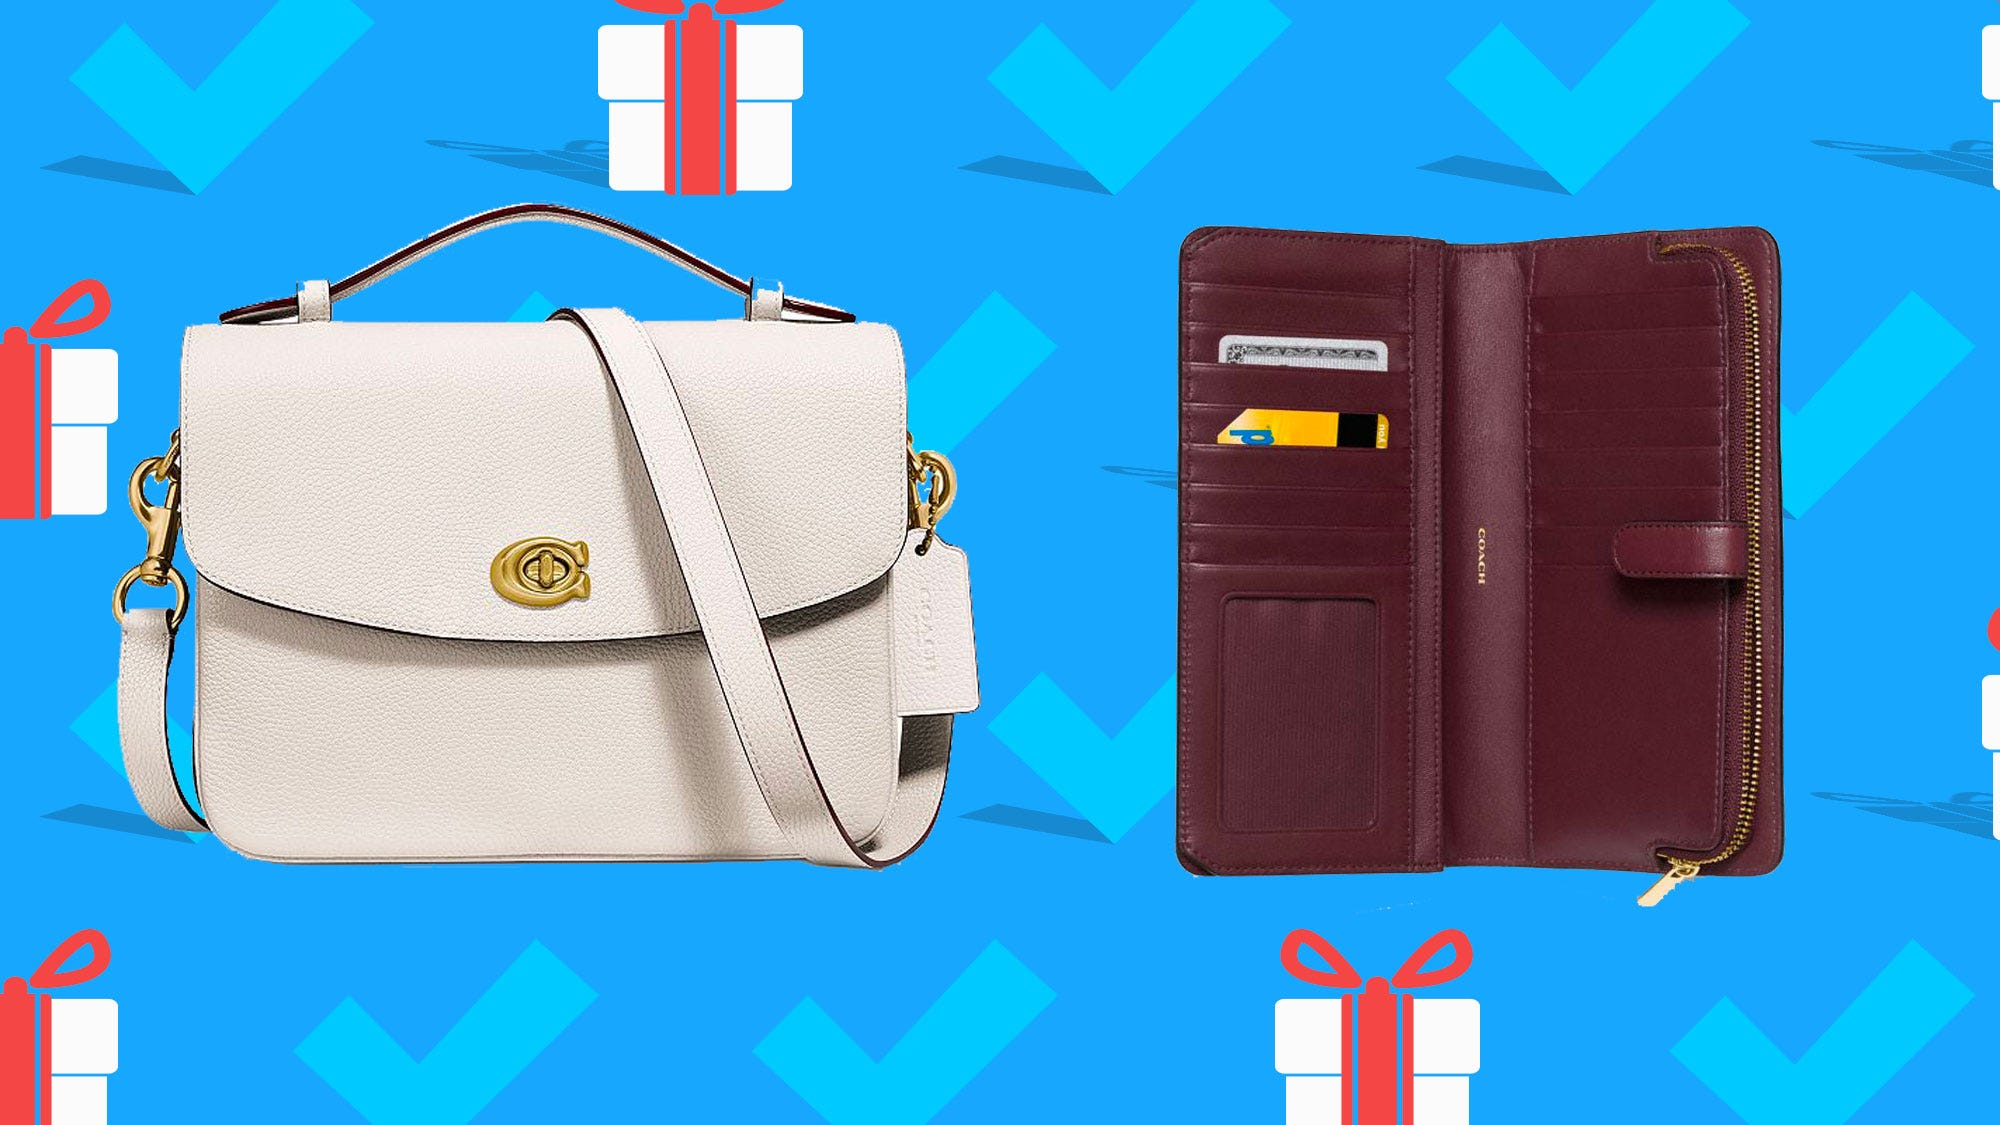 Coach bags are on sale for 50% off with an extra 15% off this weekend only